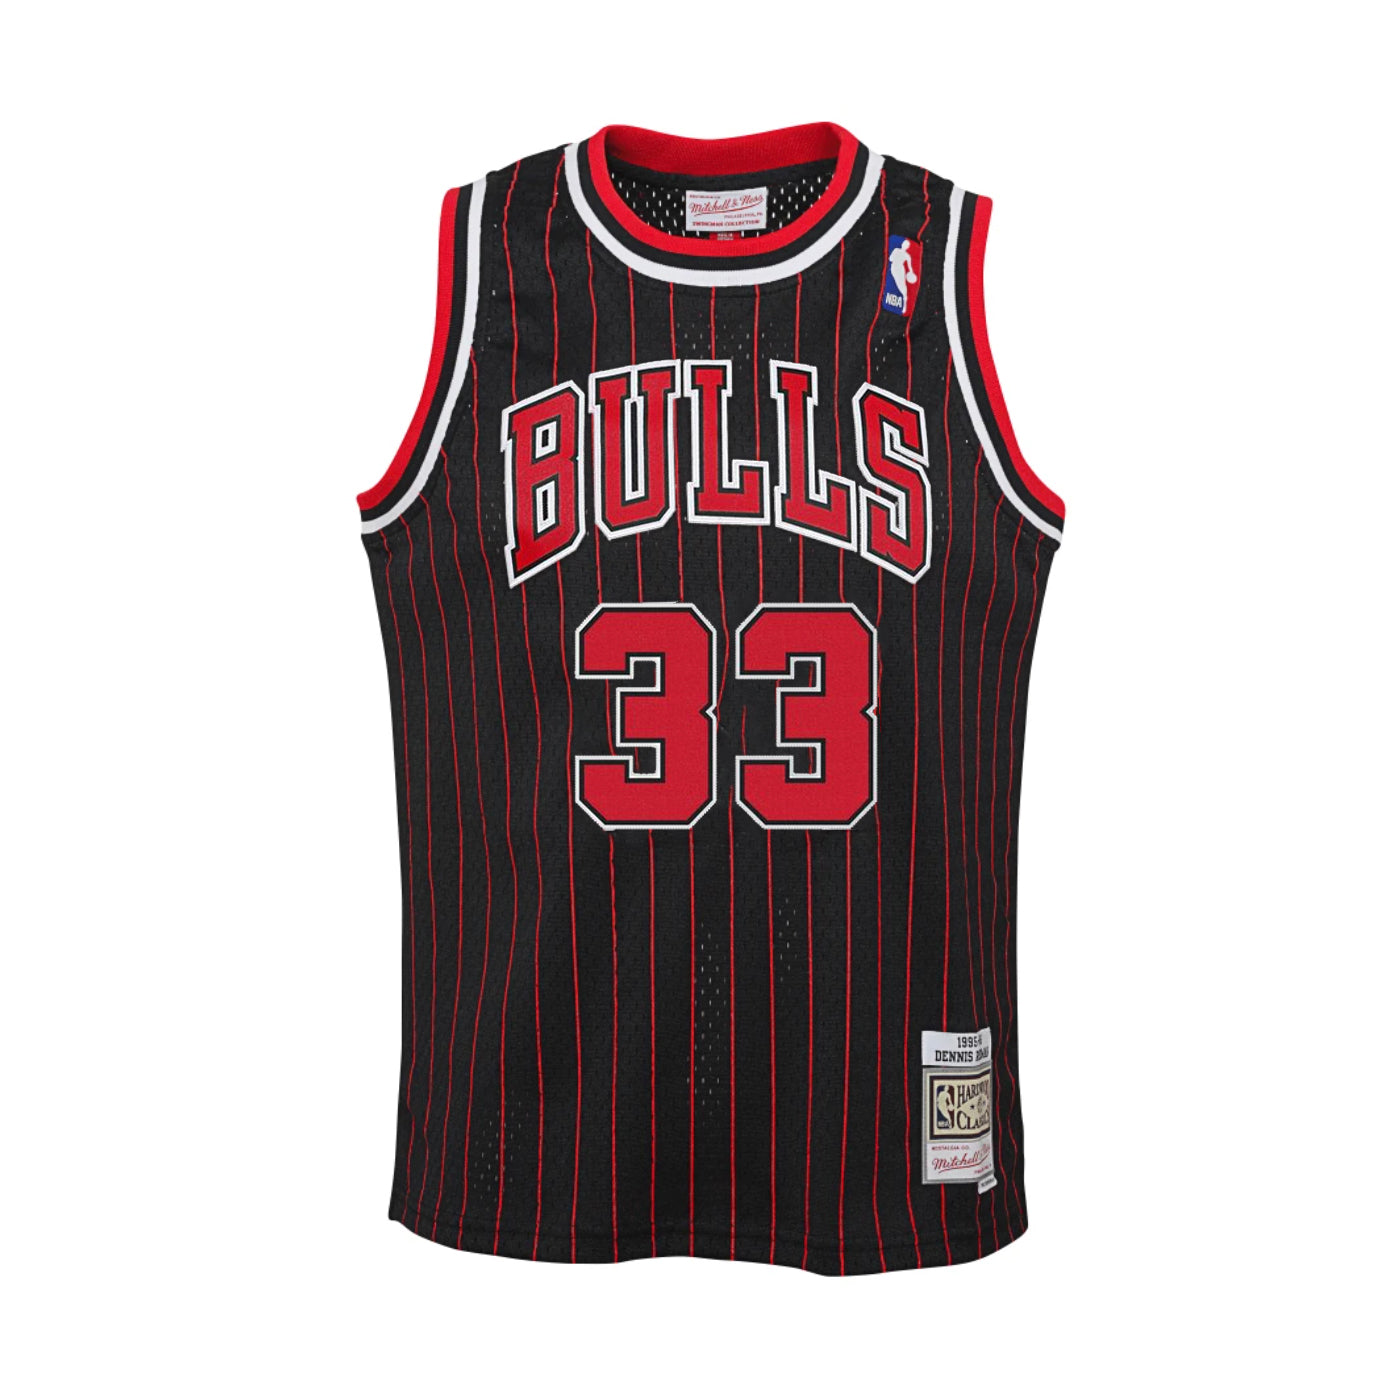 pippen jersey